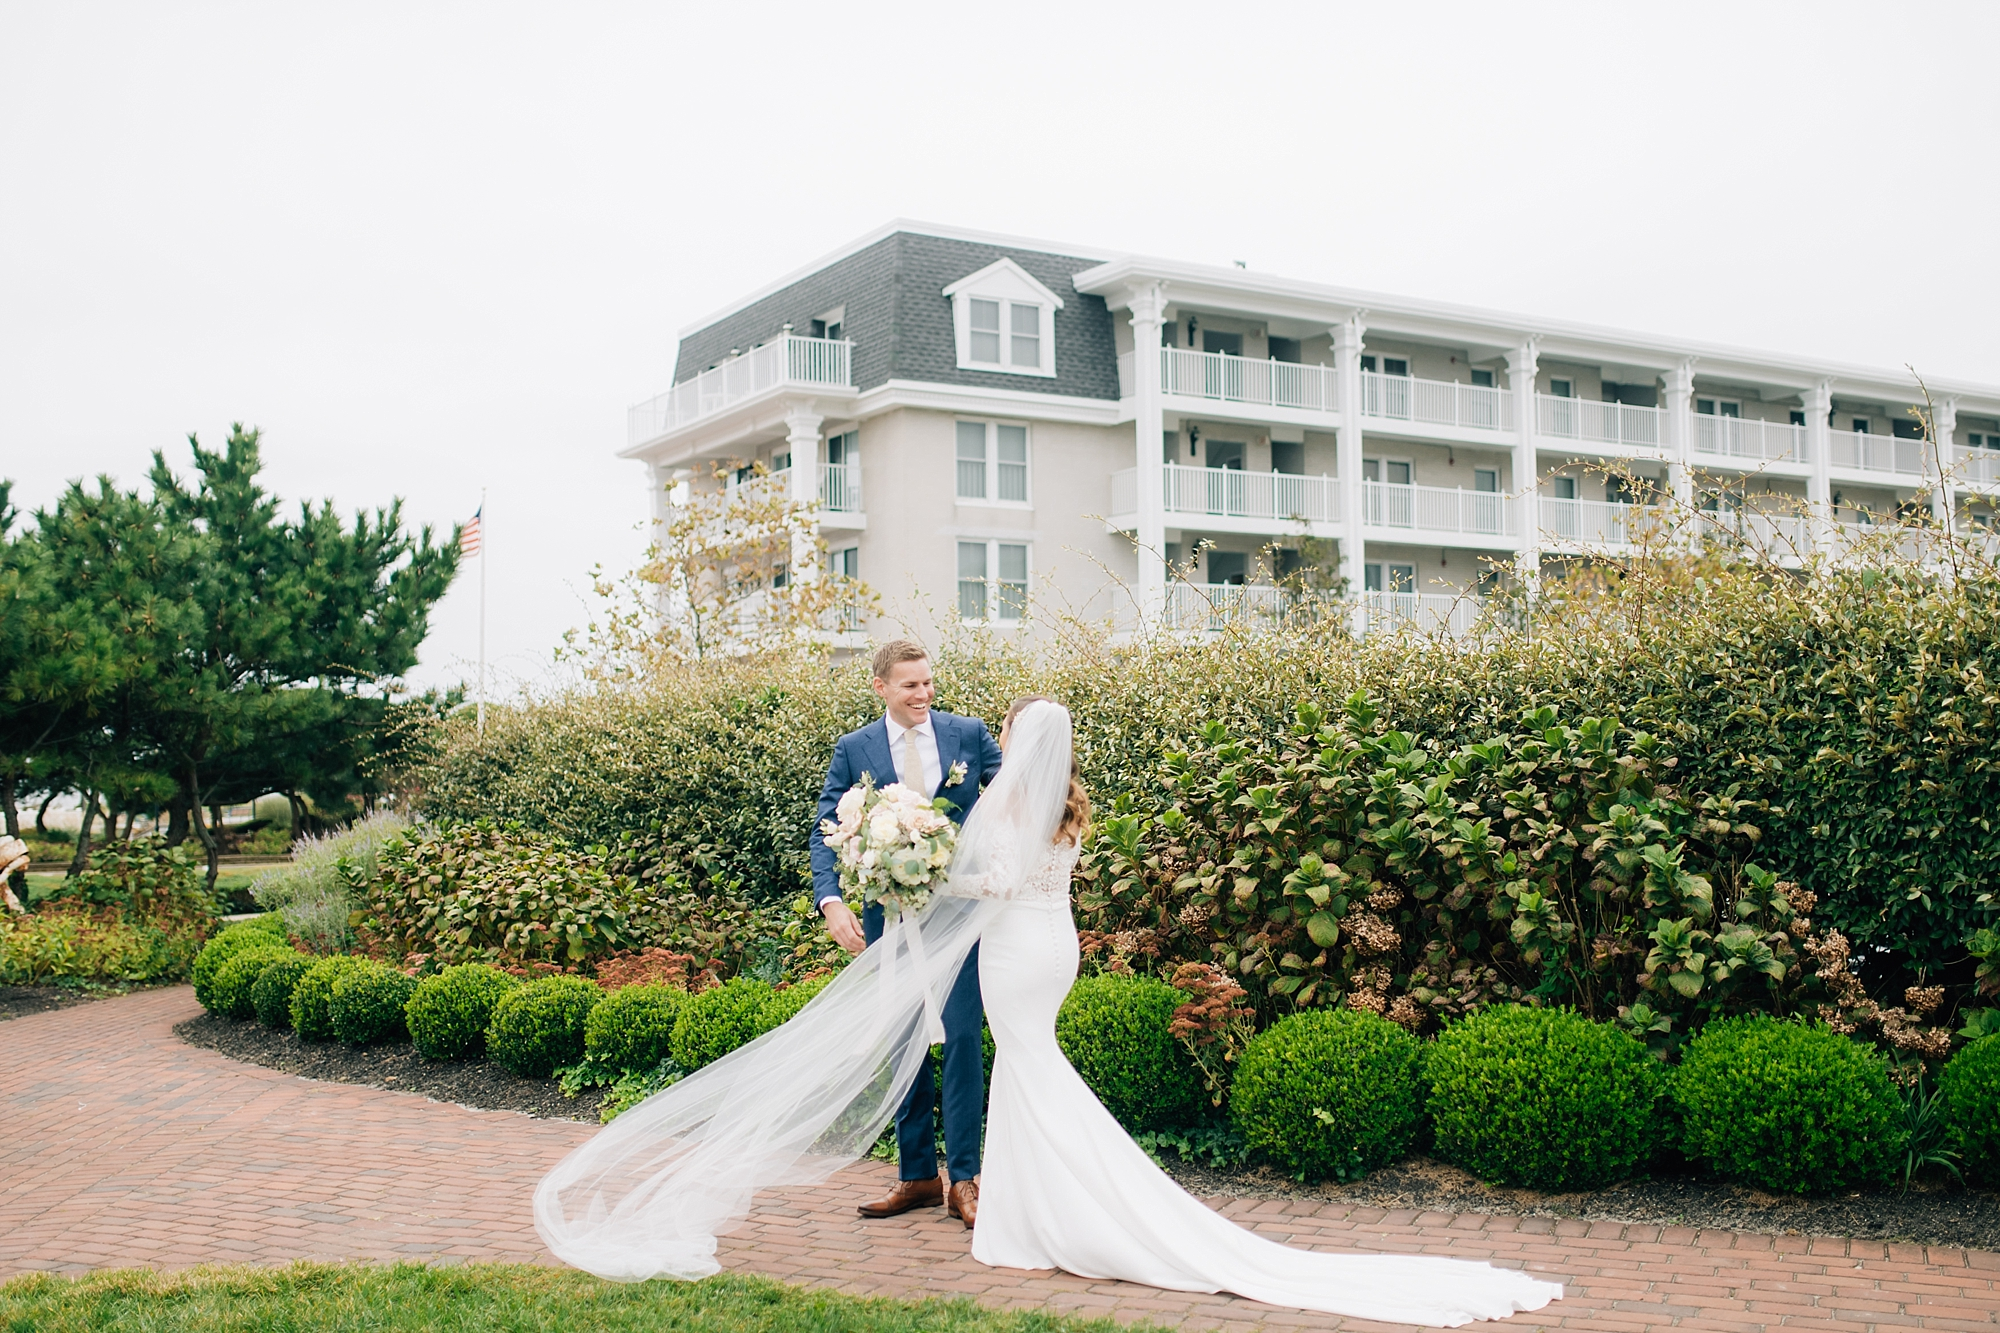 Intimate and Joyful Wedding Photography in Cape May NJ by Magdalena Studios 0012 4